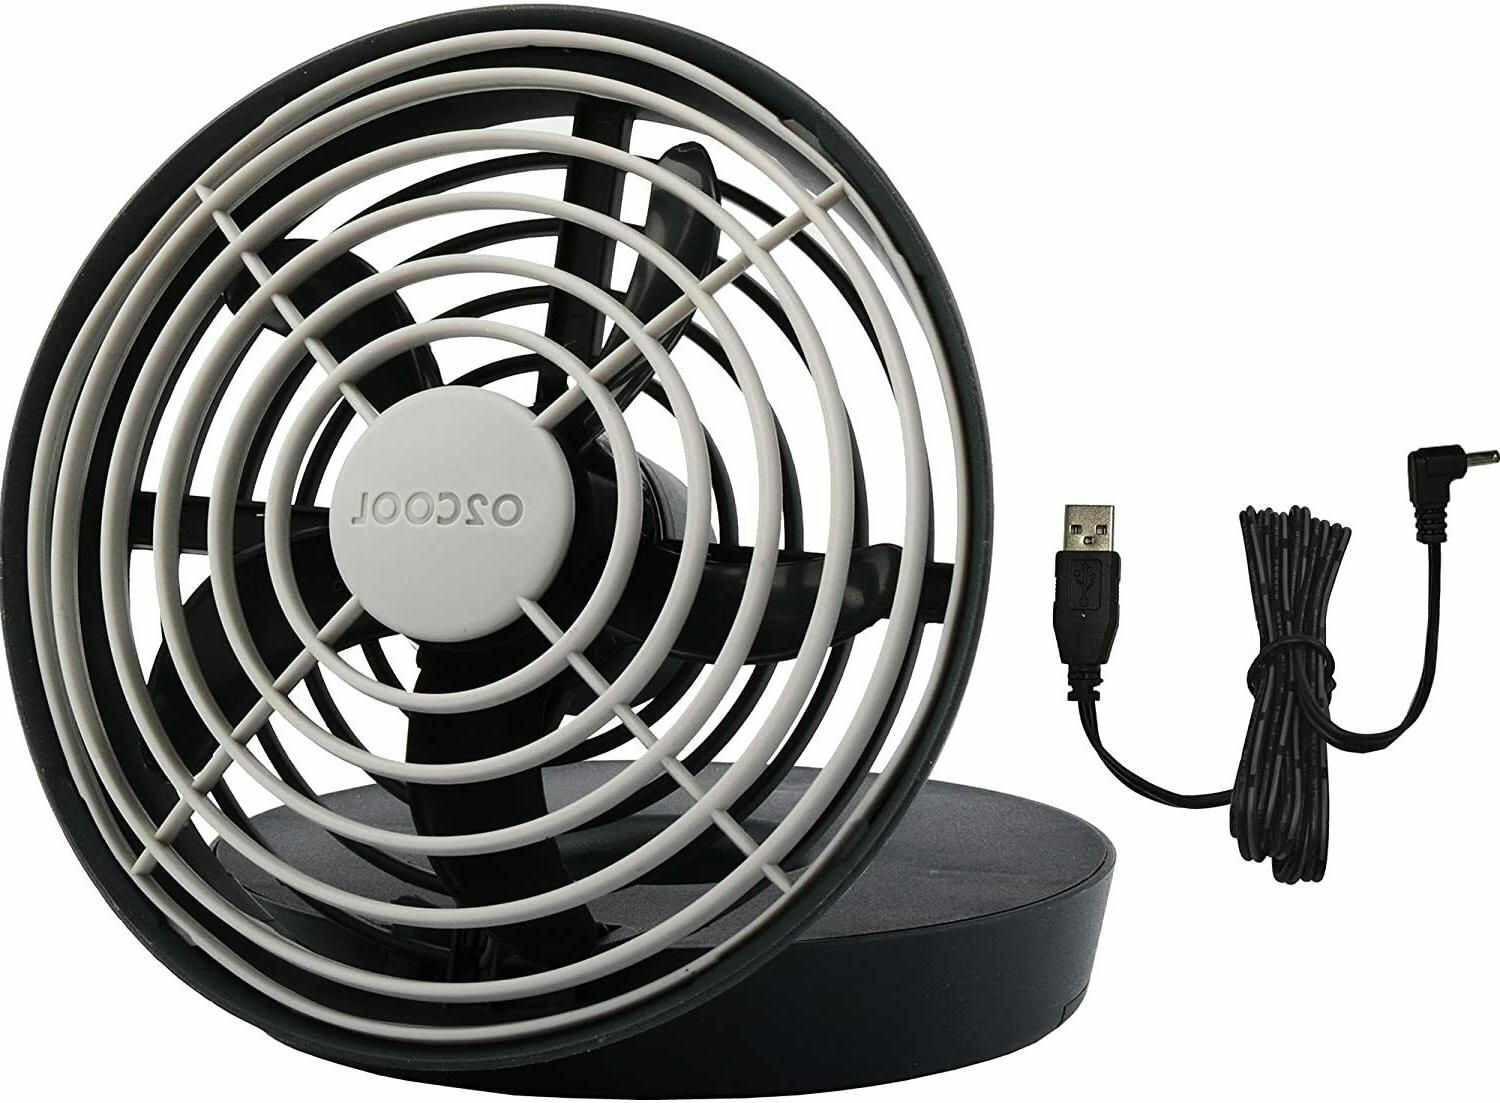 O2COOL Portable or Batteries Speed Table Fan, Gray, BRAND NEW